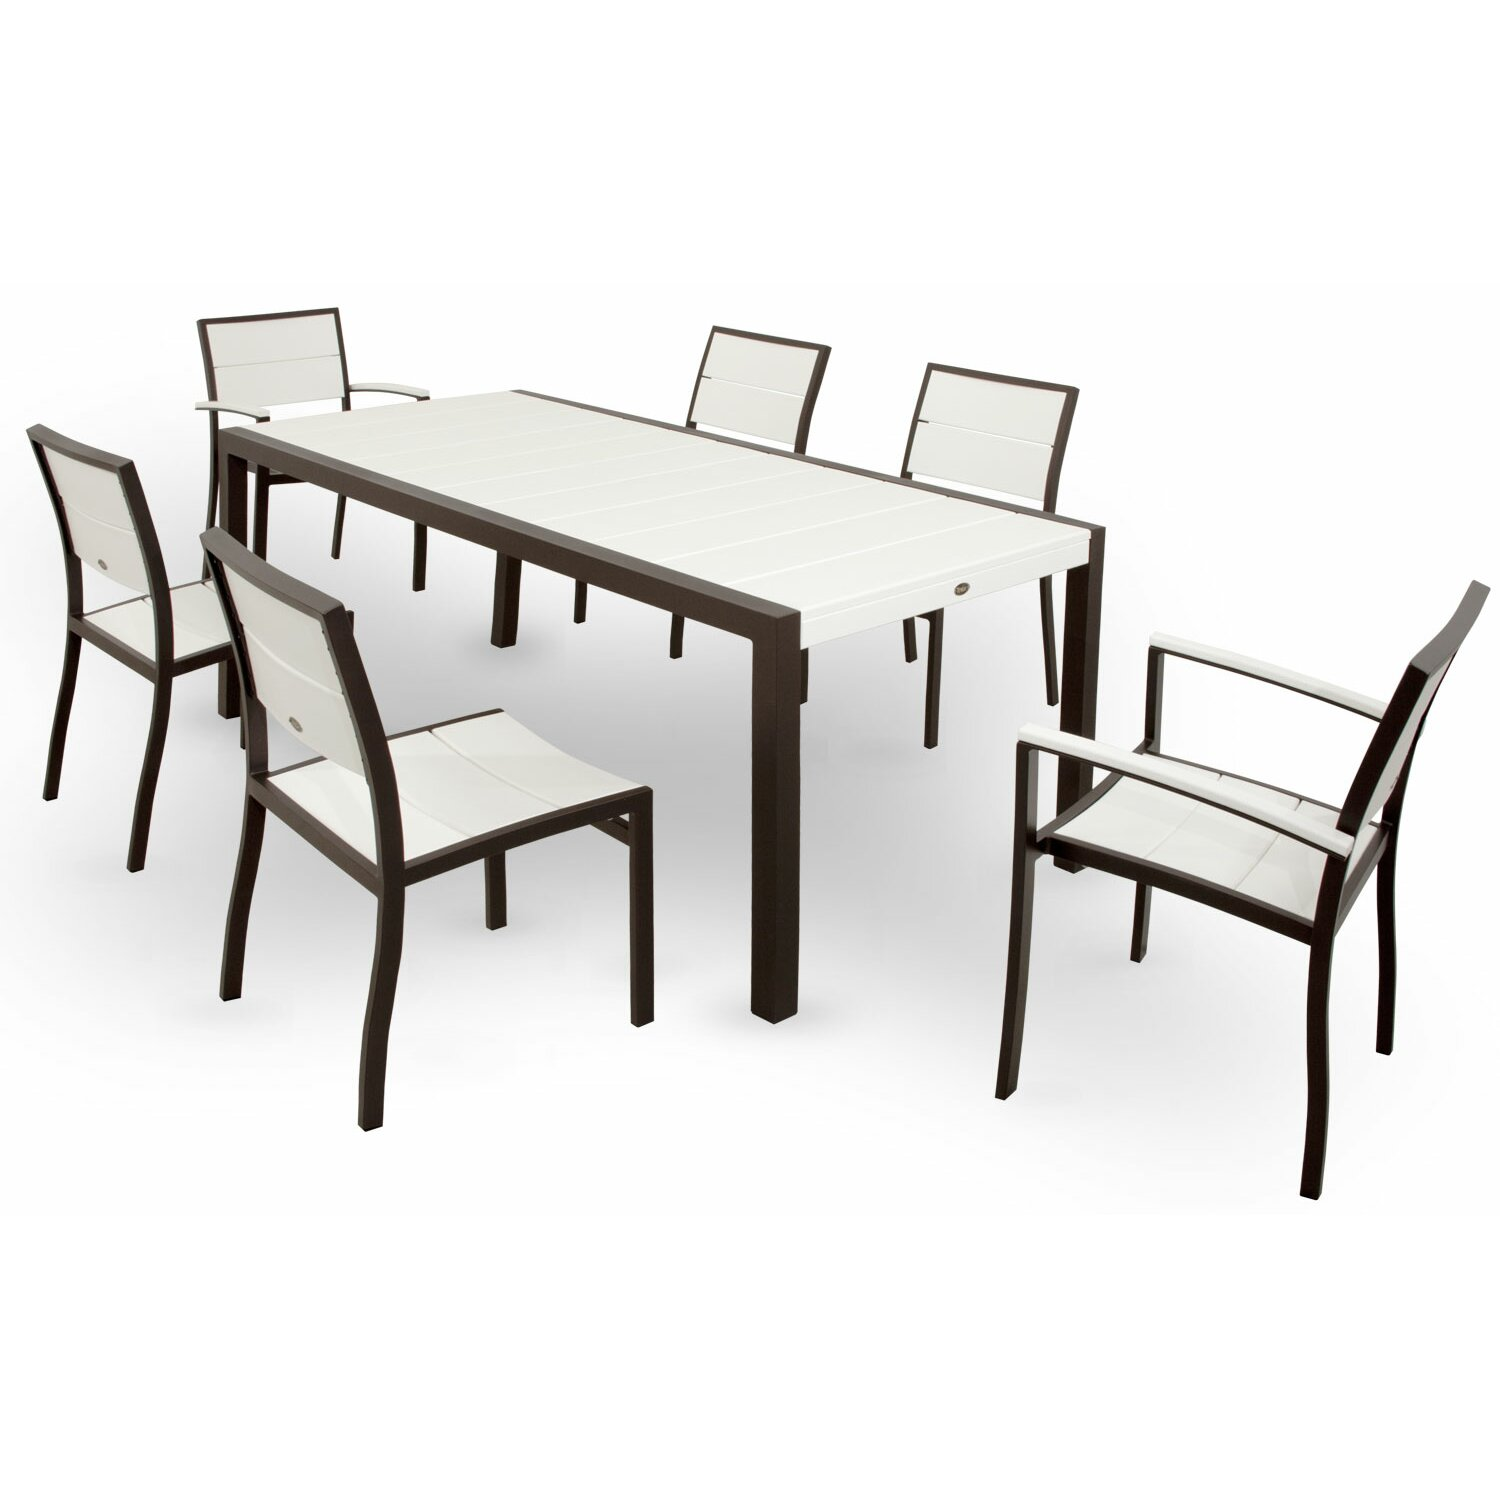 Trex surf city 7 piece dining set reviews wayfair for 7 piece dining set